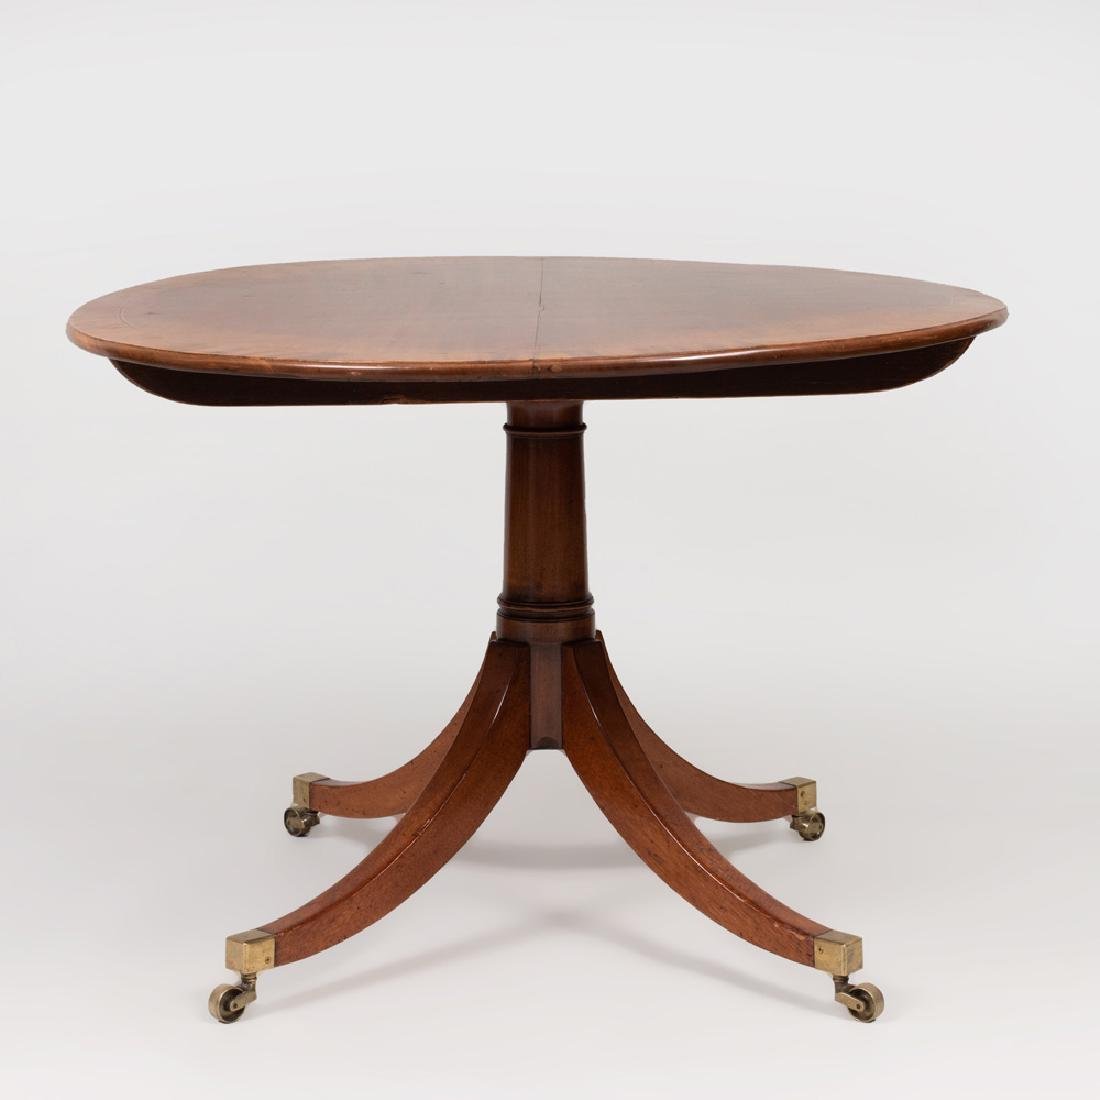 Regency Style Mahogany, Ebony and Boxwood Strung - 3